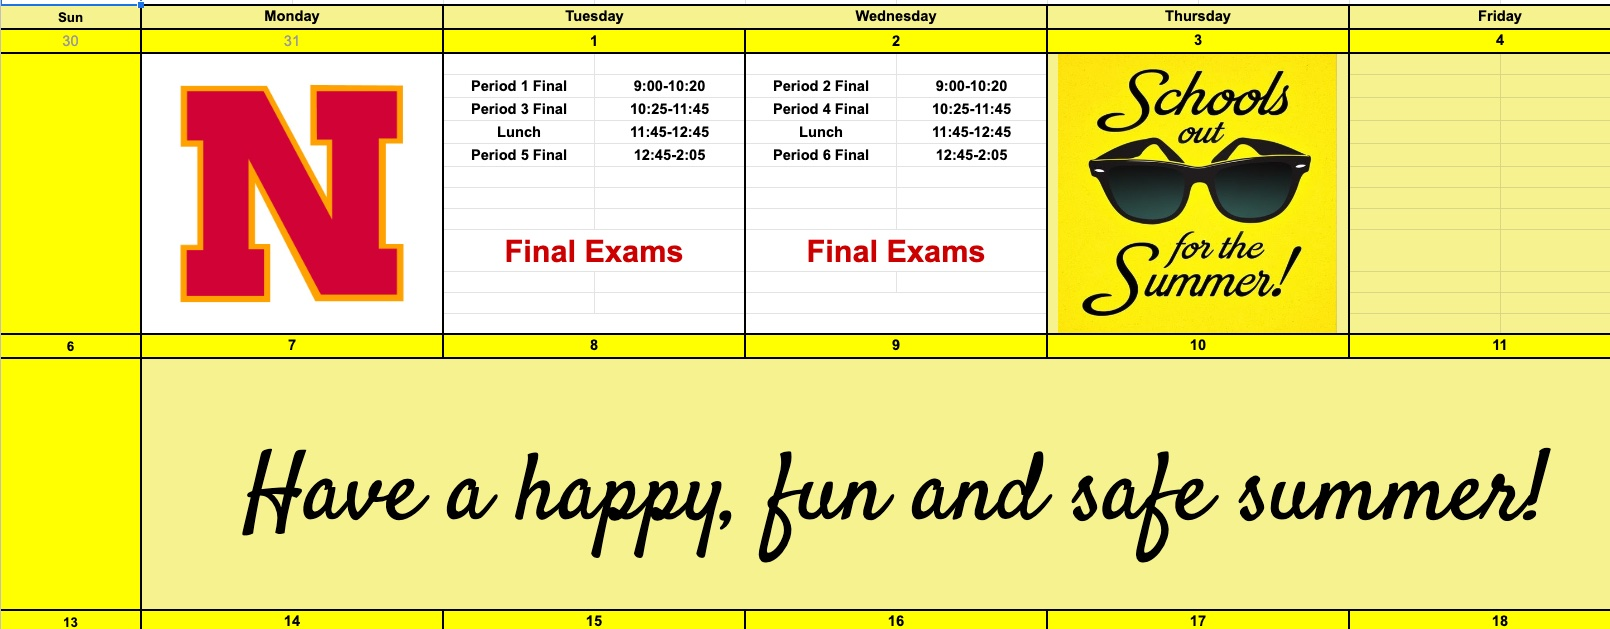 May 24 -28 Schedule